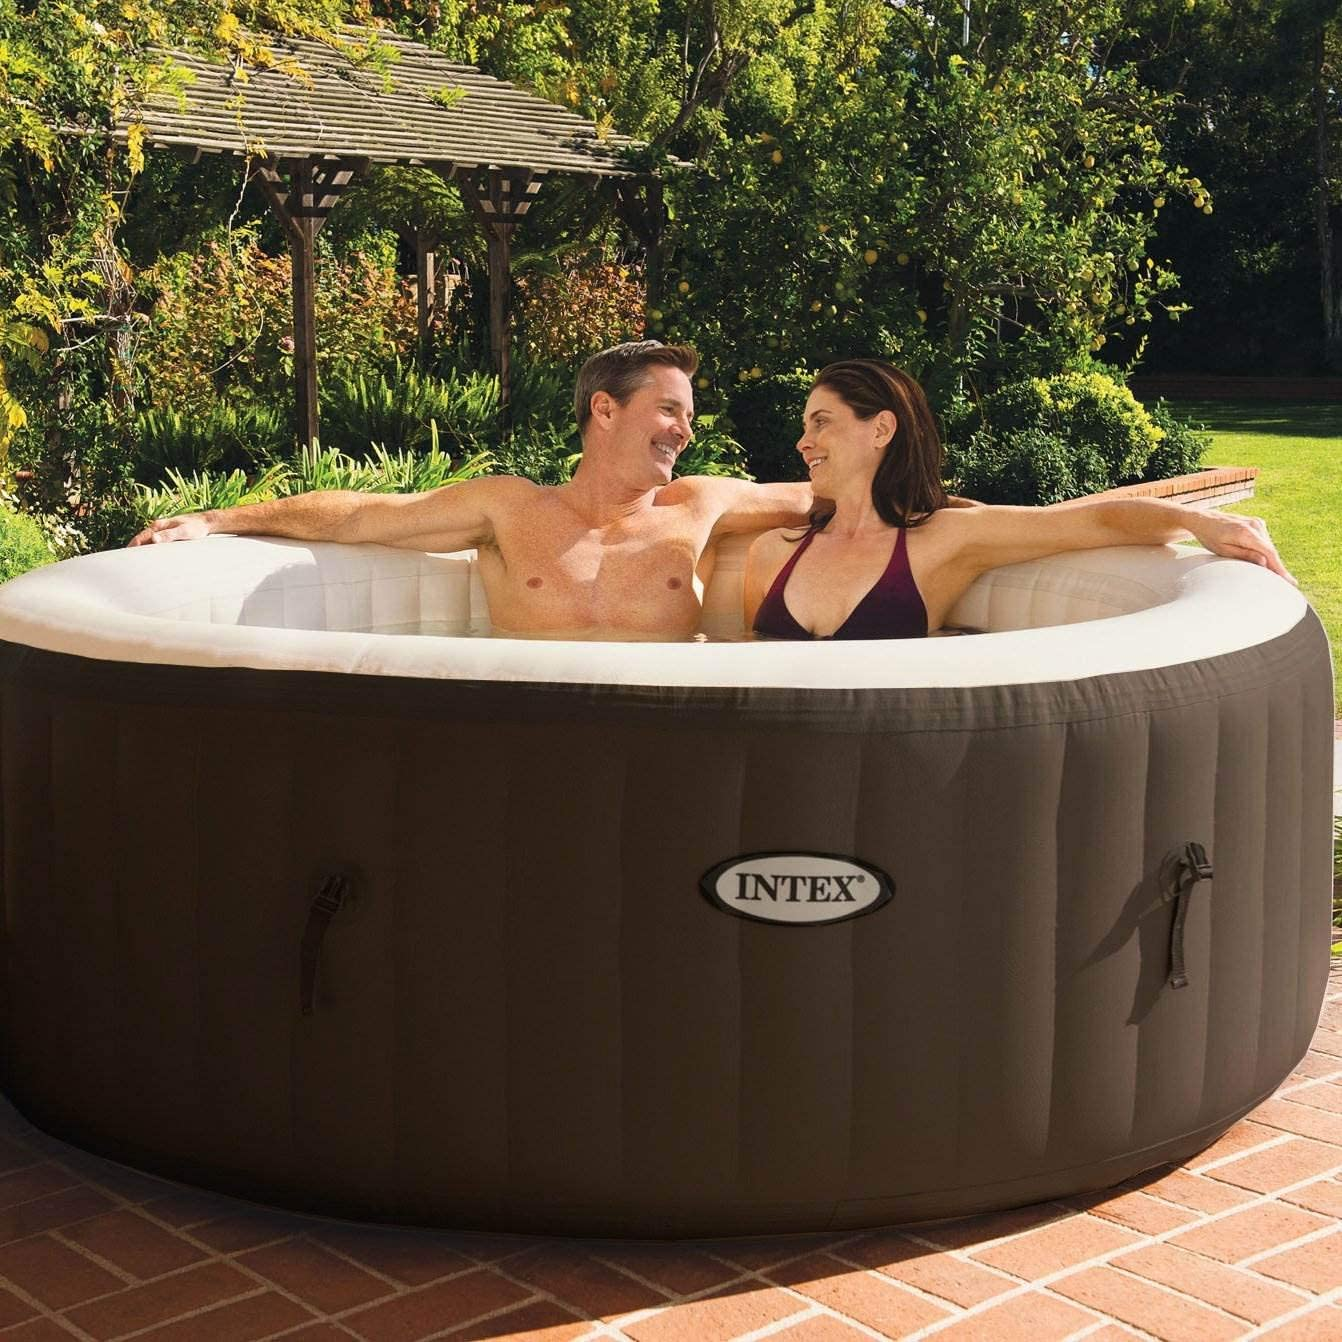 Intex PureSpa Bubble Massage 4 Person Capacity Puncture Resistant Inflatable Outdoor Hot Tub Spa with Soothing Jets